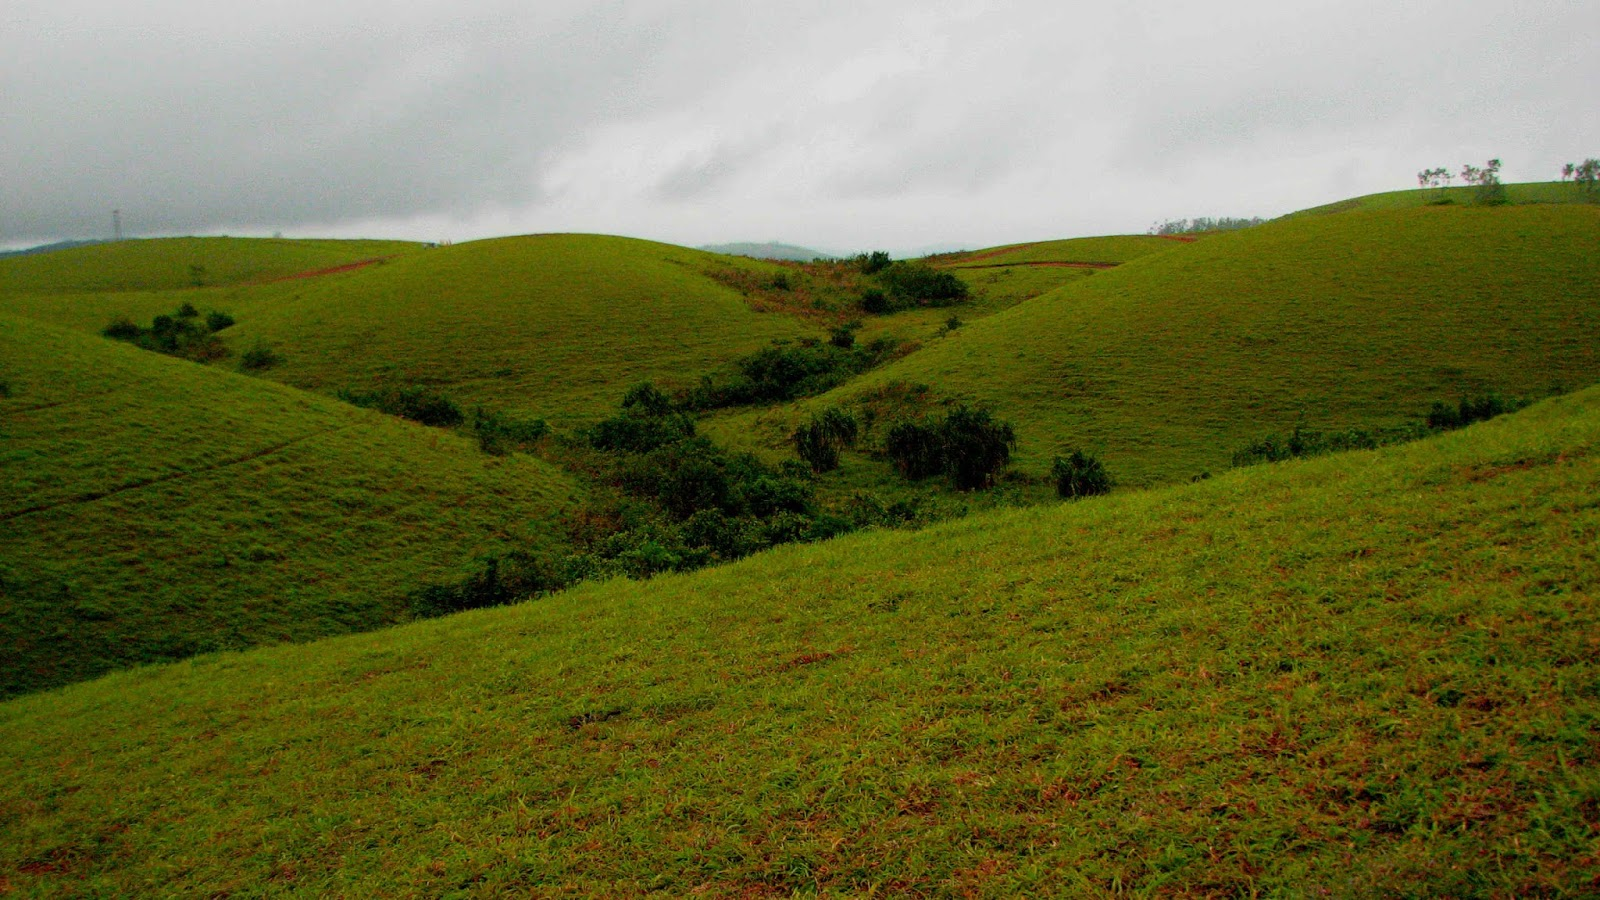 Vagamon India  City pictures : The Road Less Travelled: A Pilgrimage to my Shrine: Vagamon, India